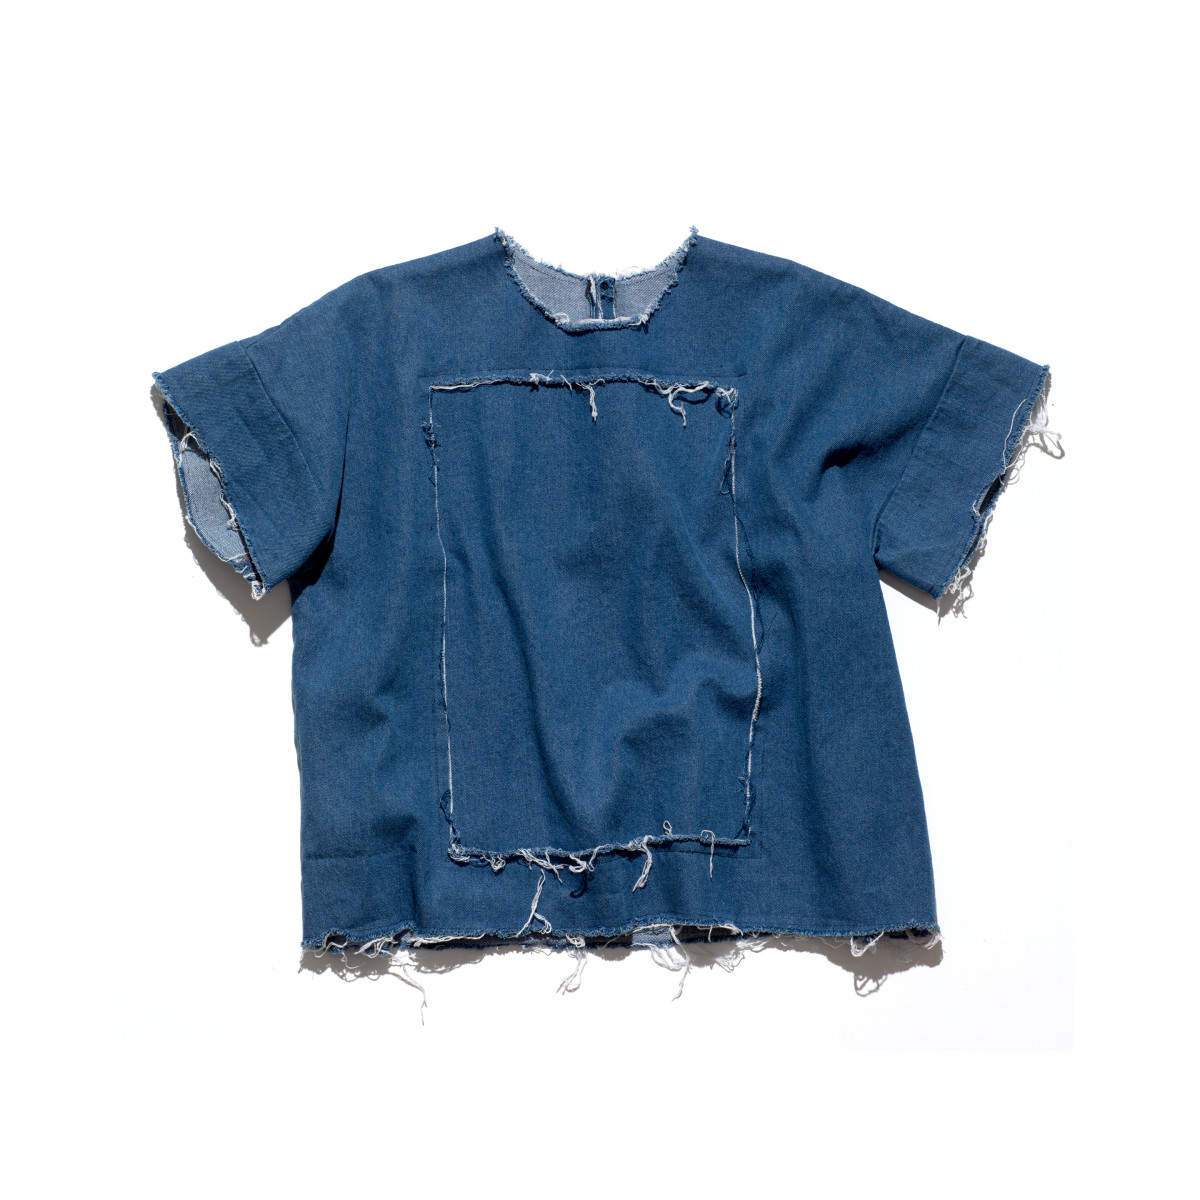 Coleraine top, $140, available at Winsome Goods